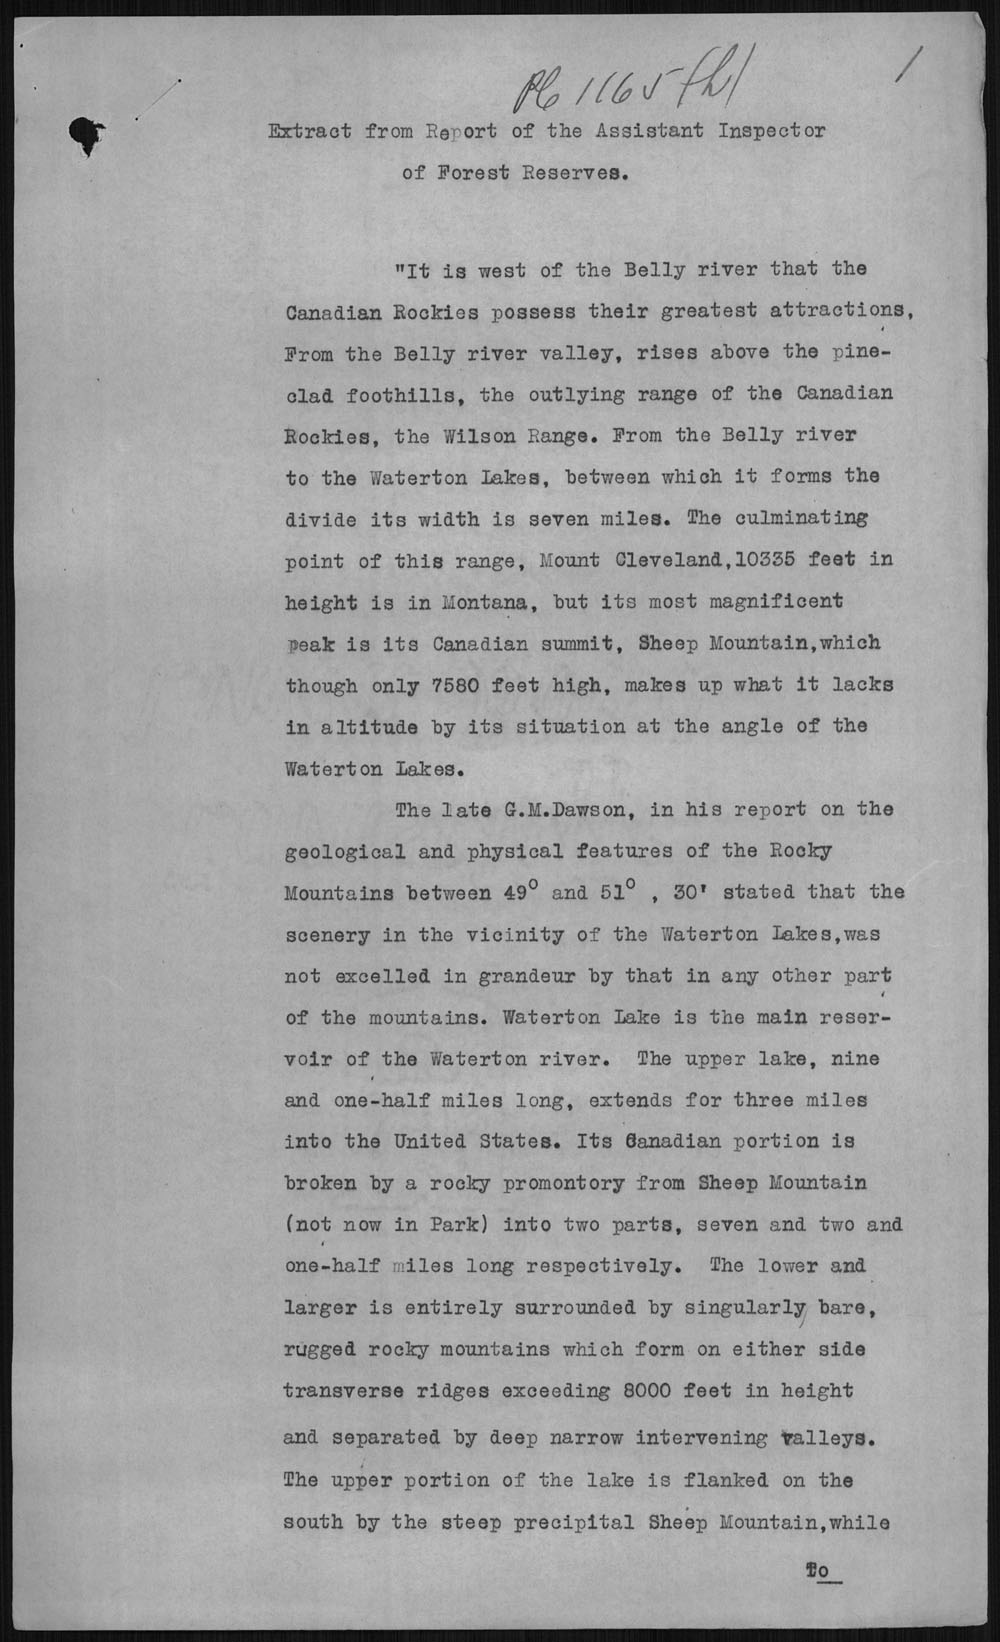 Digitized page of Orders in Council for Image No.: e010877258-v8